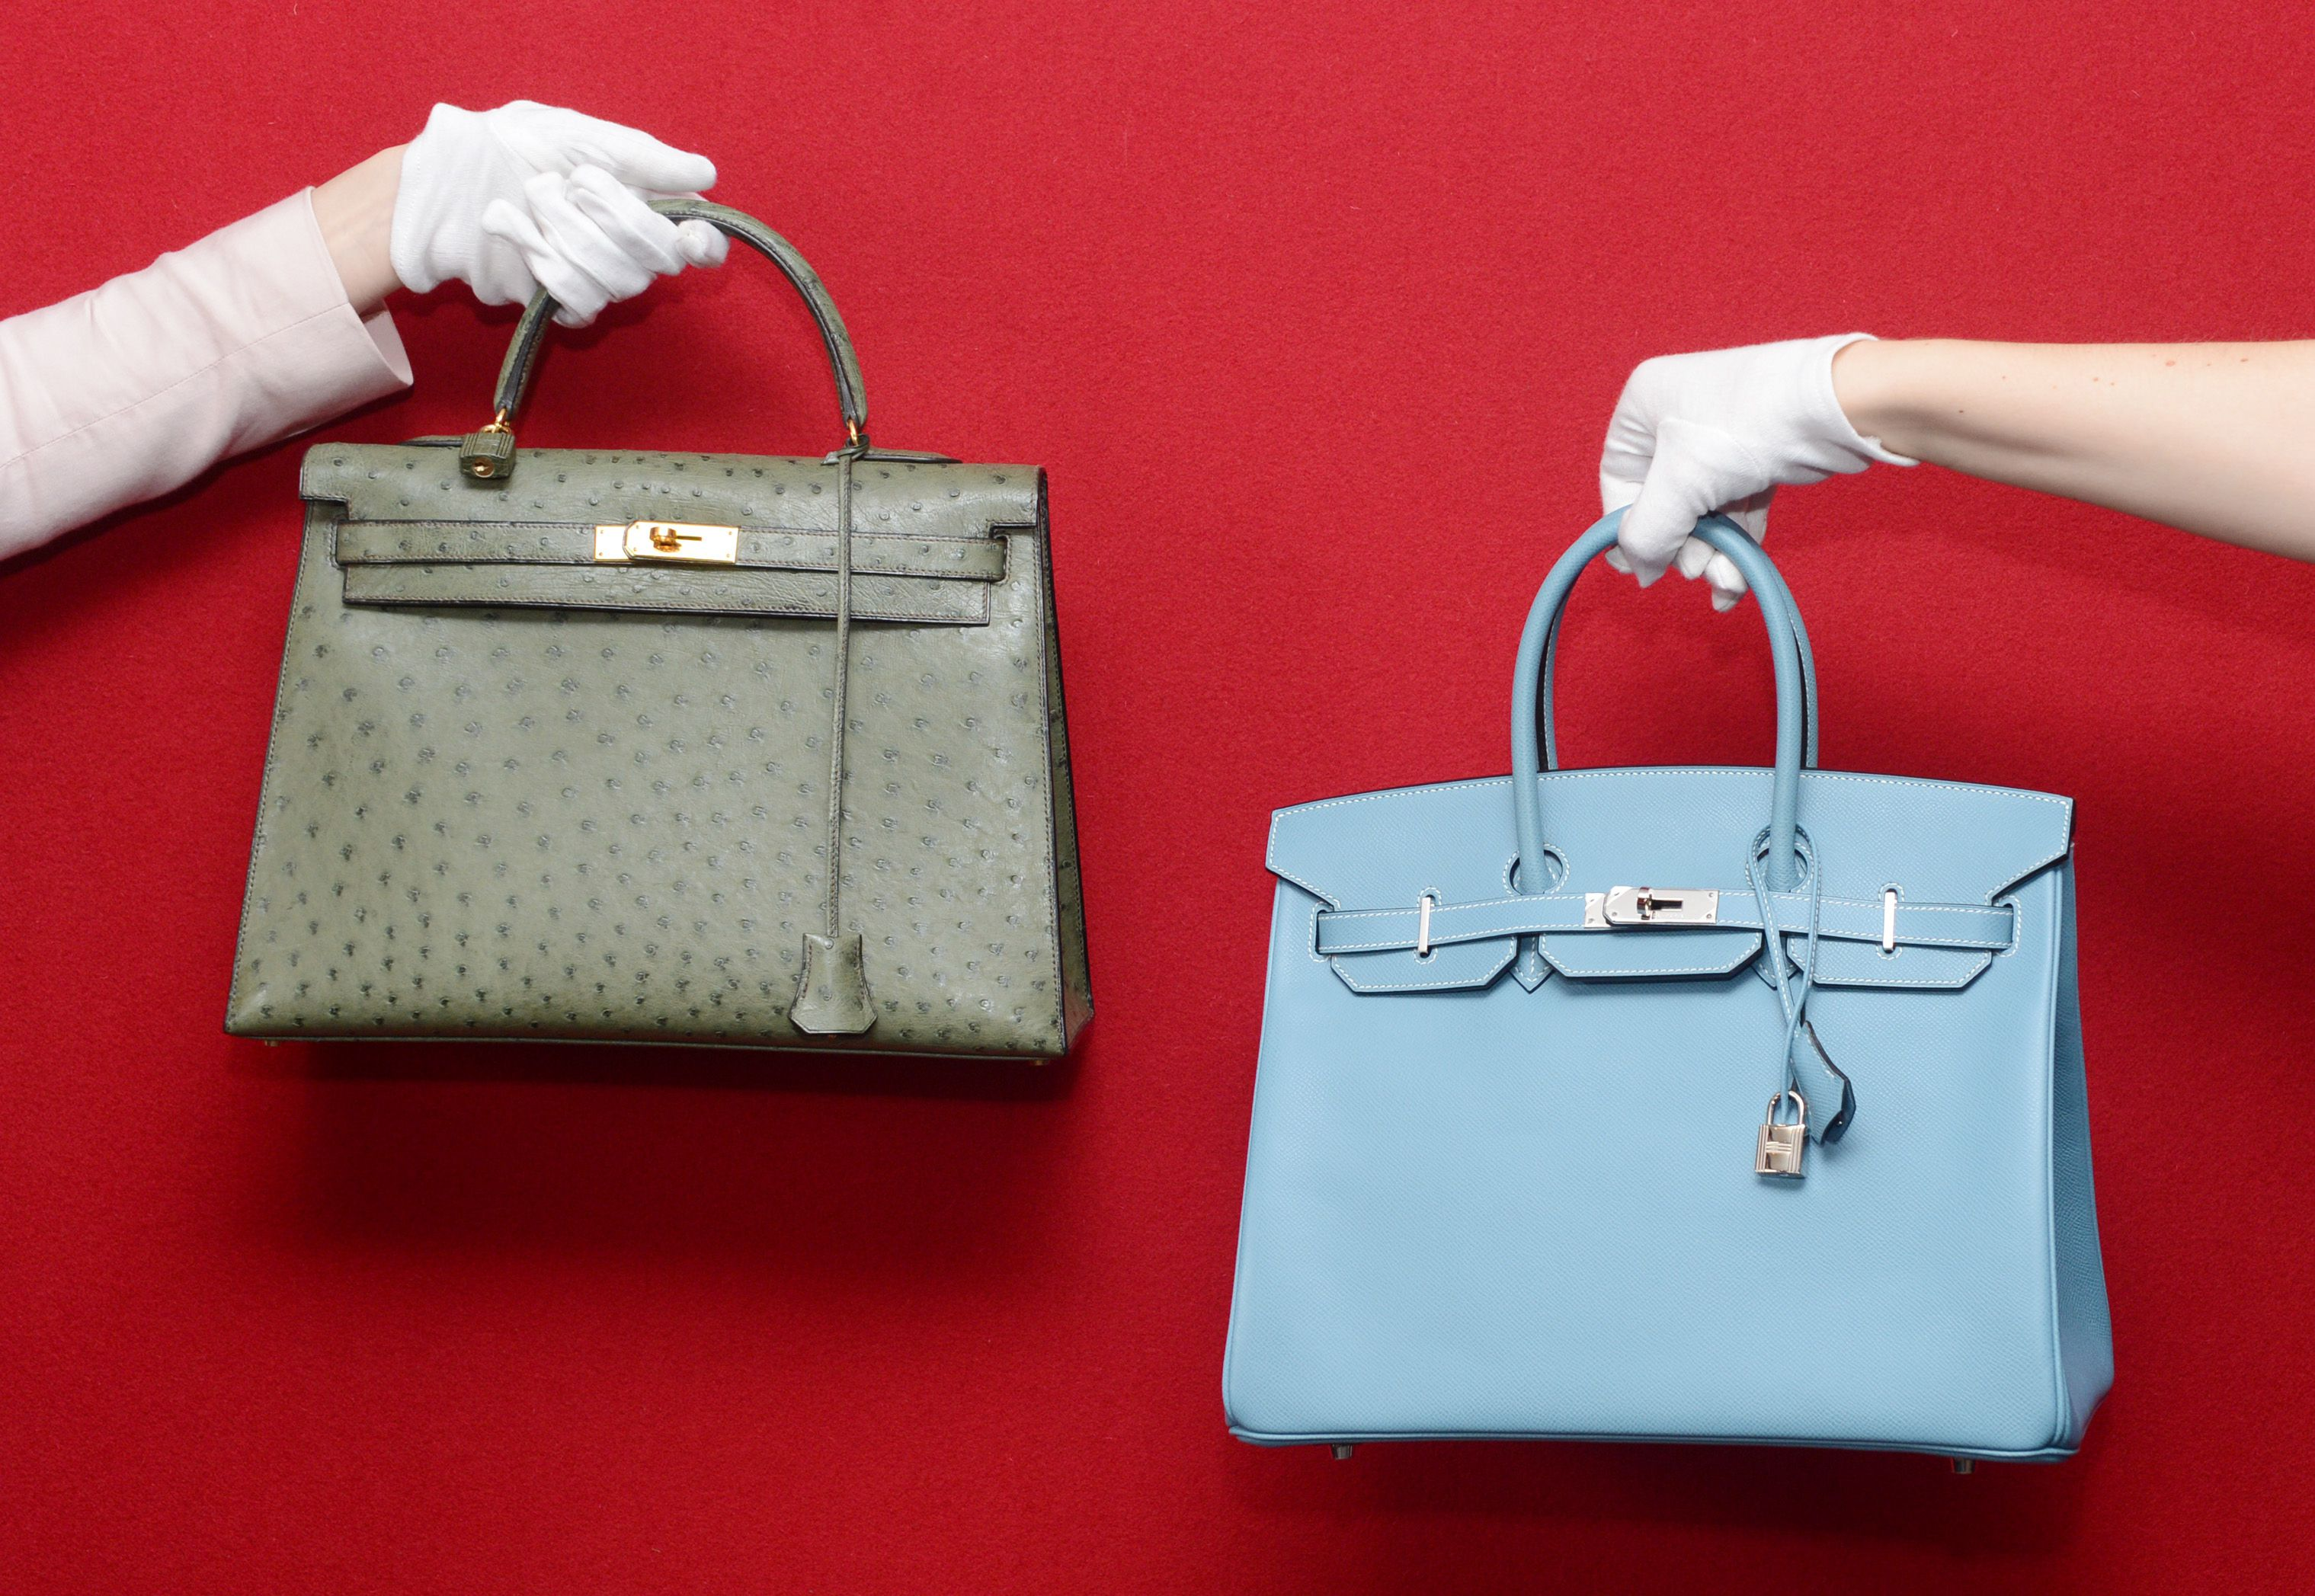 The history behind the iconic Hermes Birkin bag